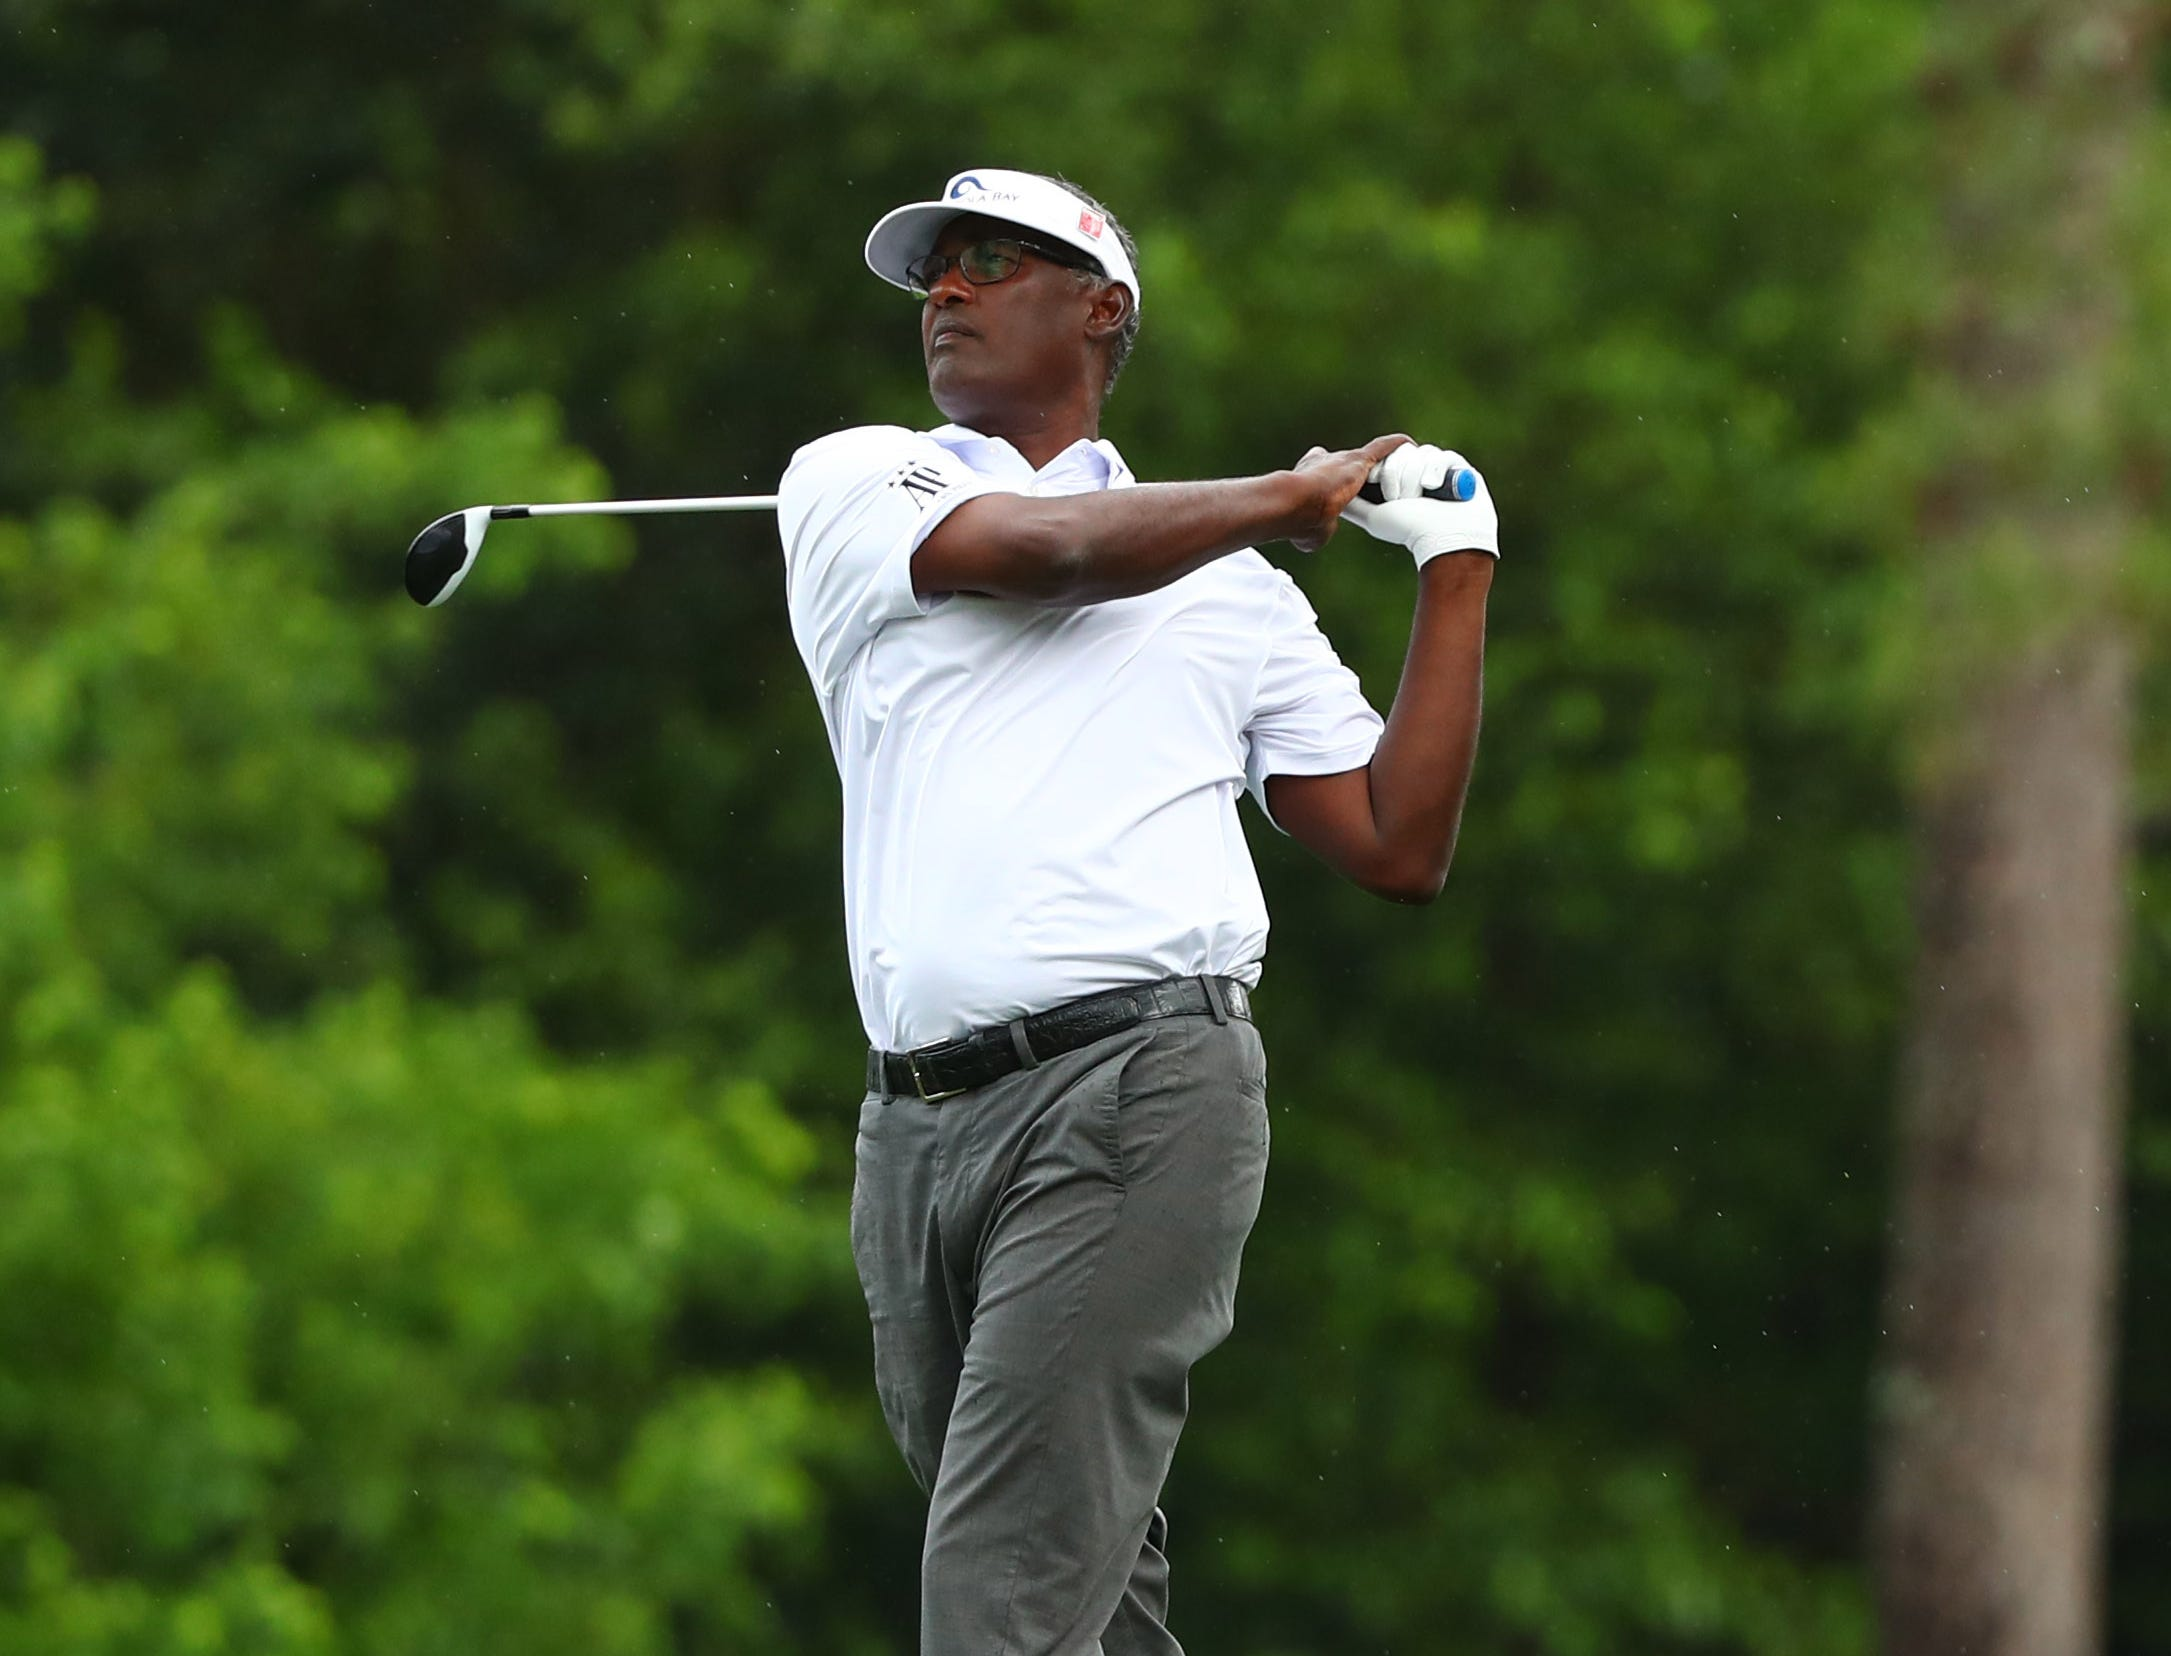 Apr 12, 2019; Augusta, GA, USA; Vijay Singh plays a shot on the 2nd hole during the second round of The Masters golf tournament at Augusta National Golf Club. Mandatory Credit: Rob Schumacher-USA TODAY Sports